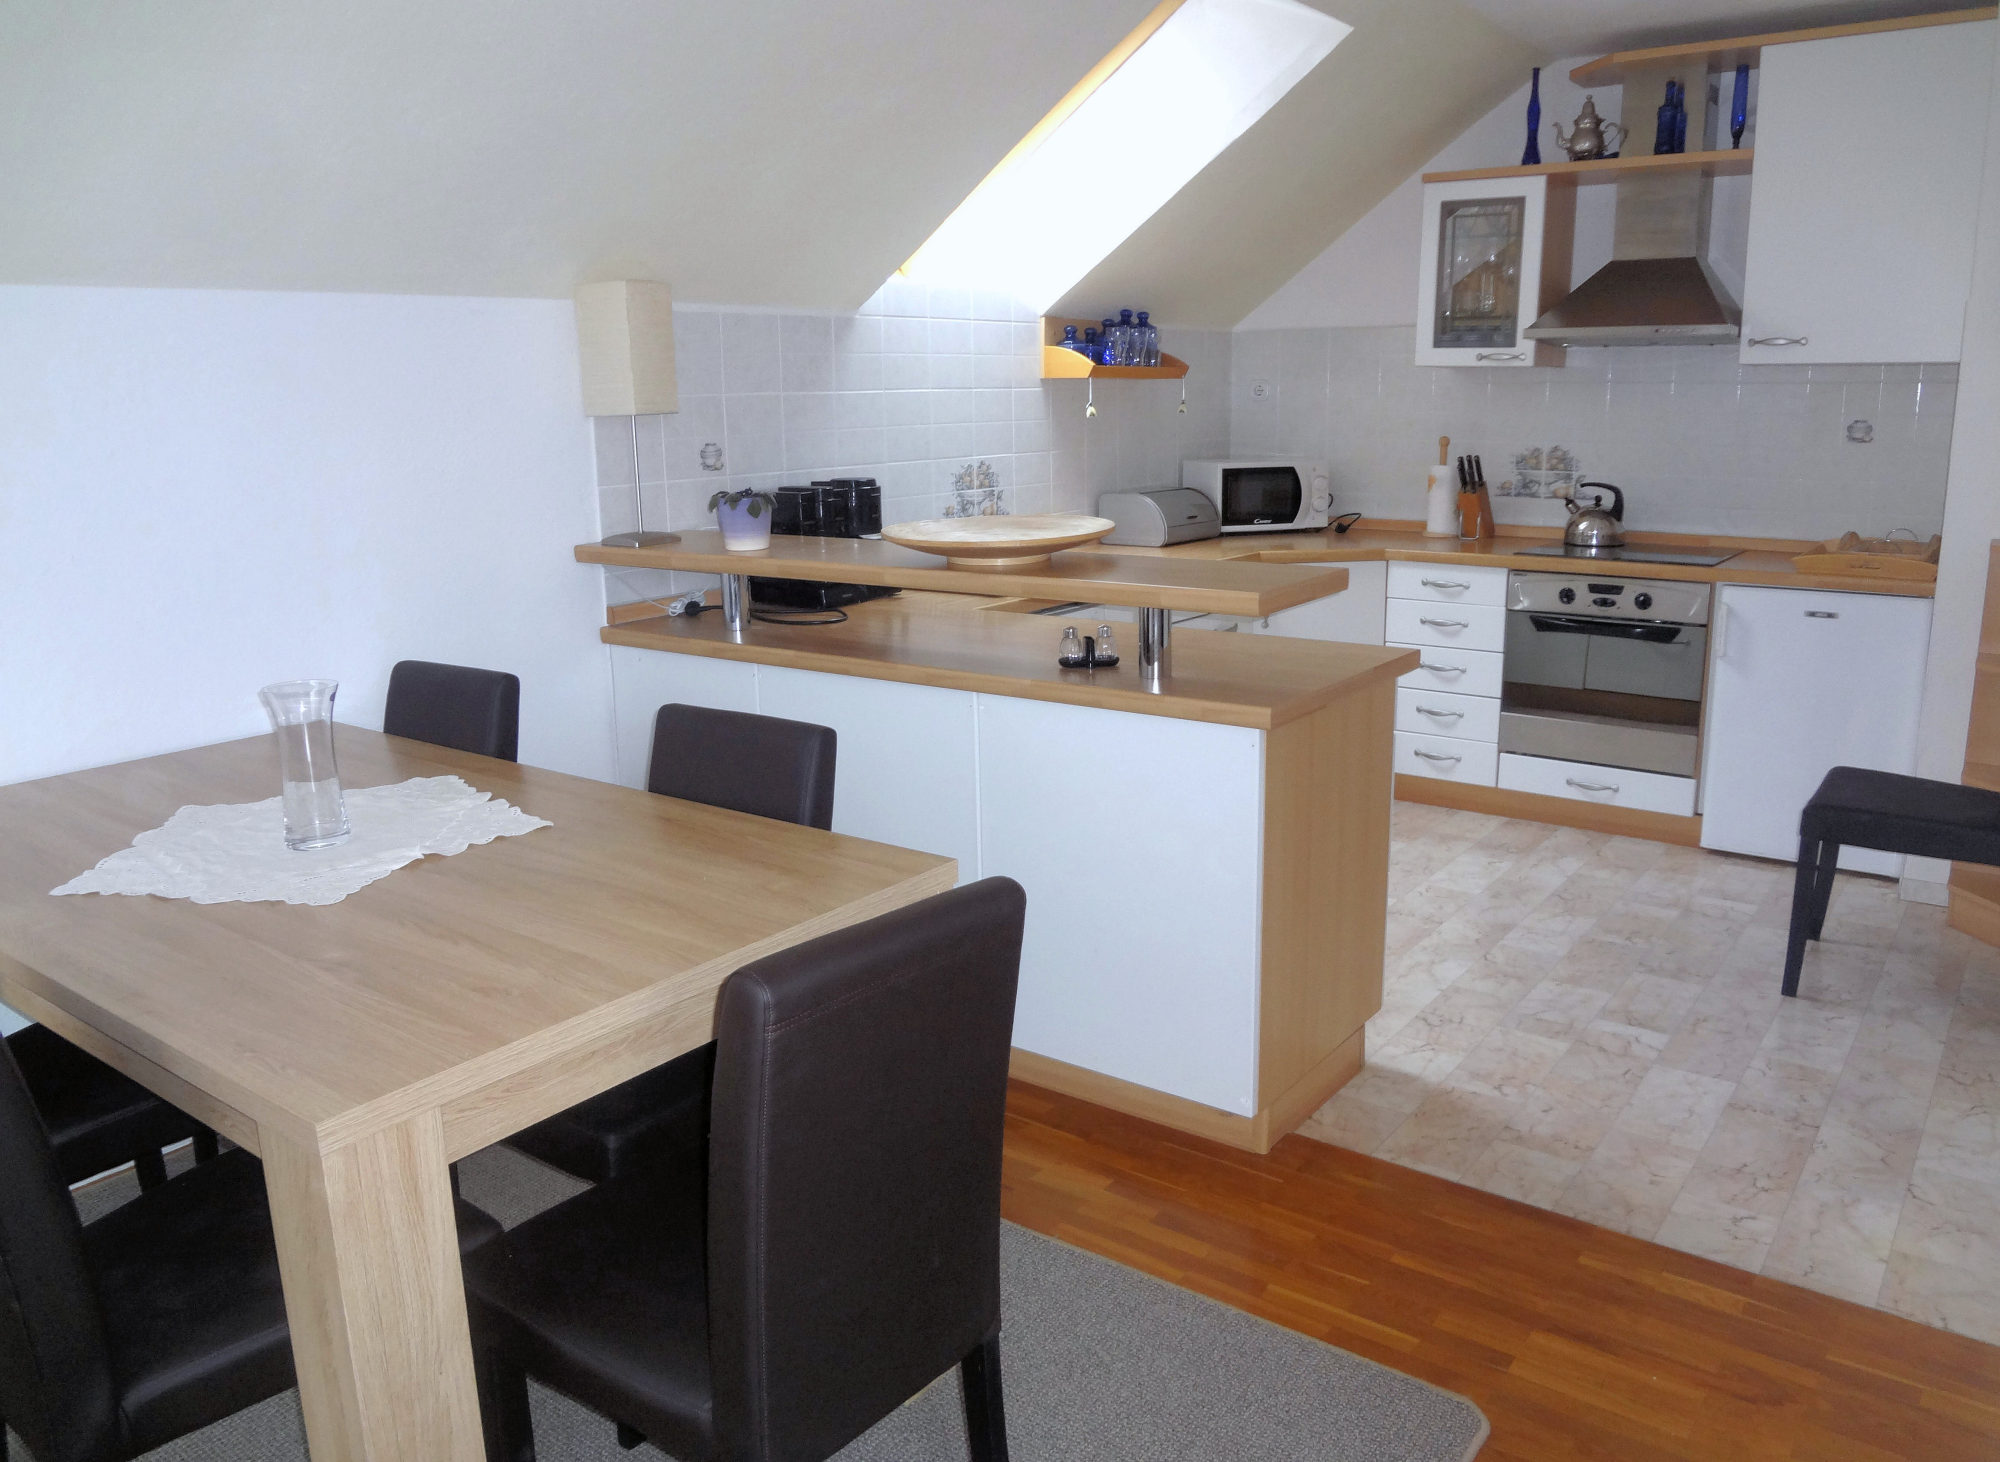 The kitchen and dinning area of Apartments Fine Stay in the Bled area of Slovenia